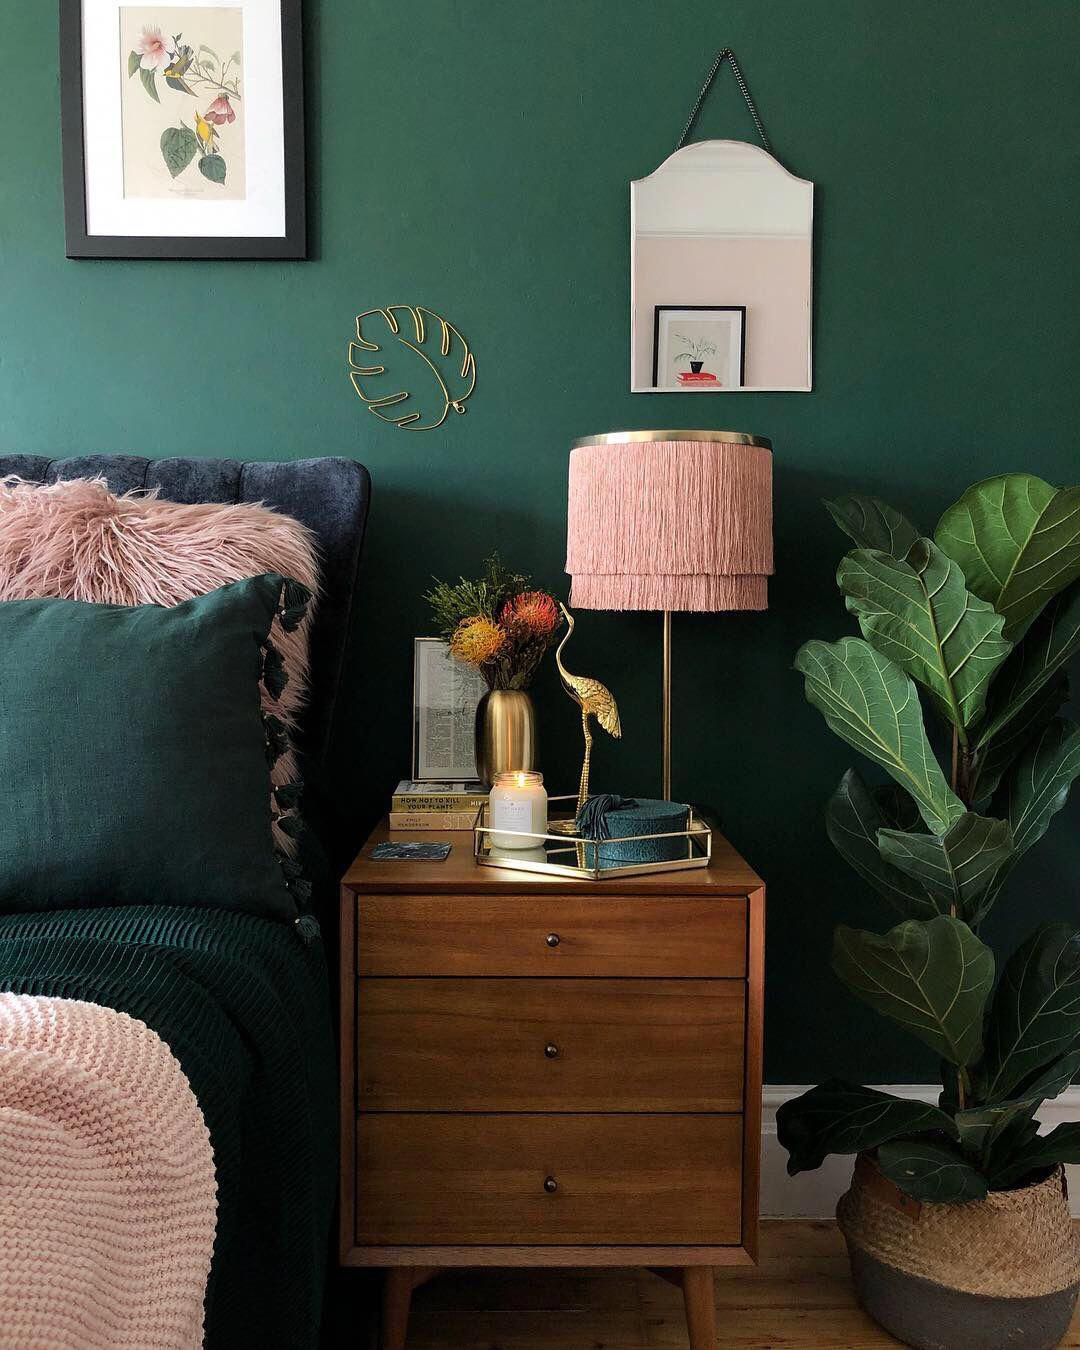 Emerald and pink interior room